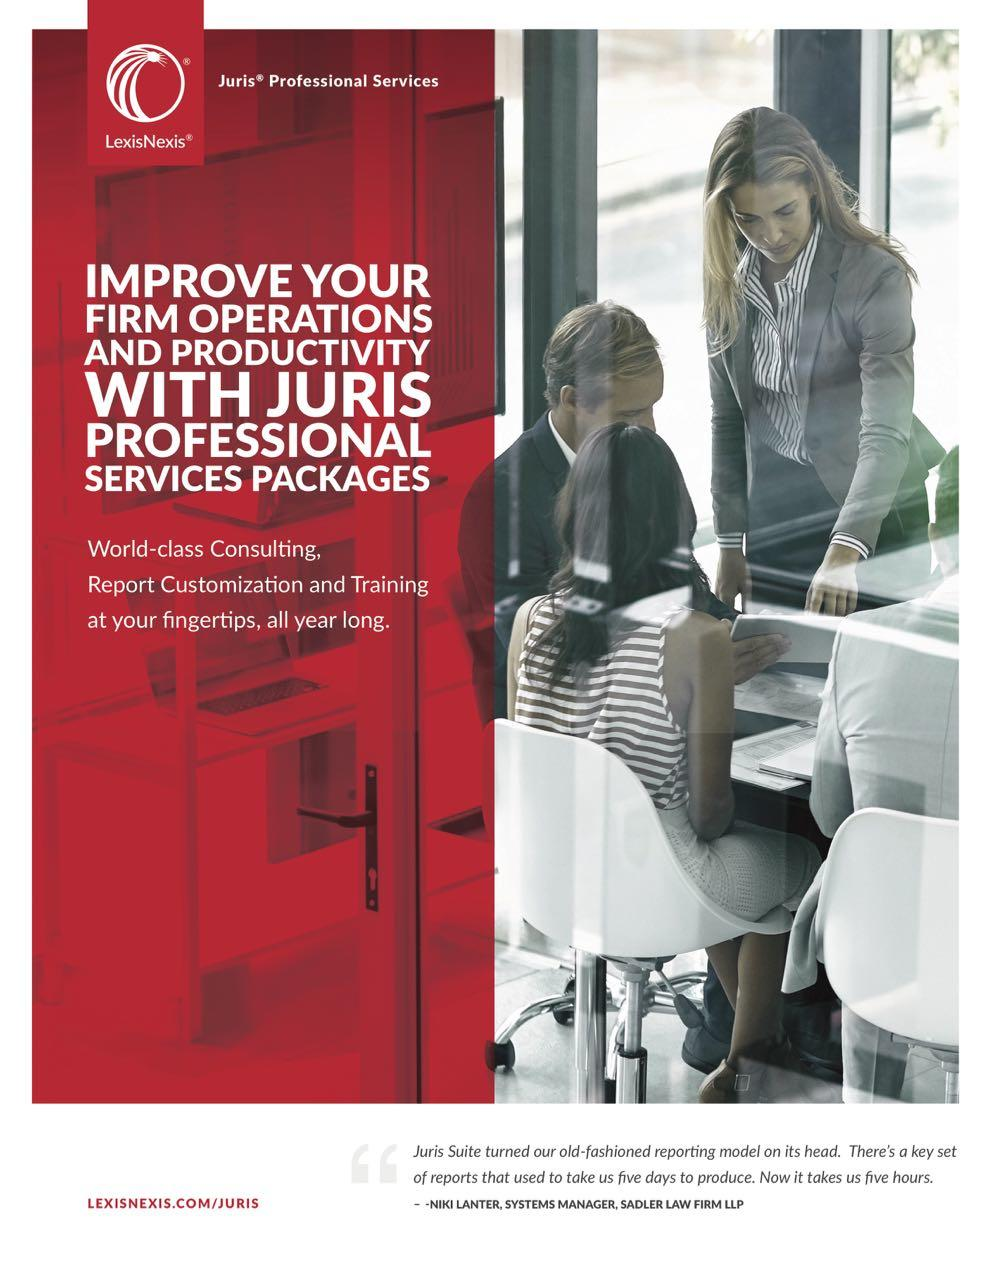 LexisNexis Juris Brochure Cover